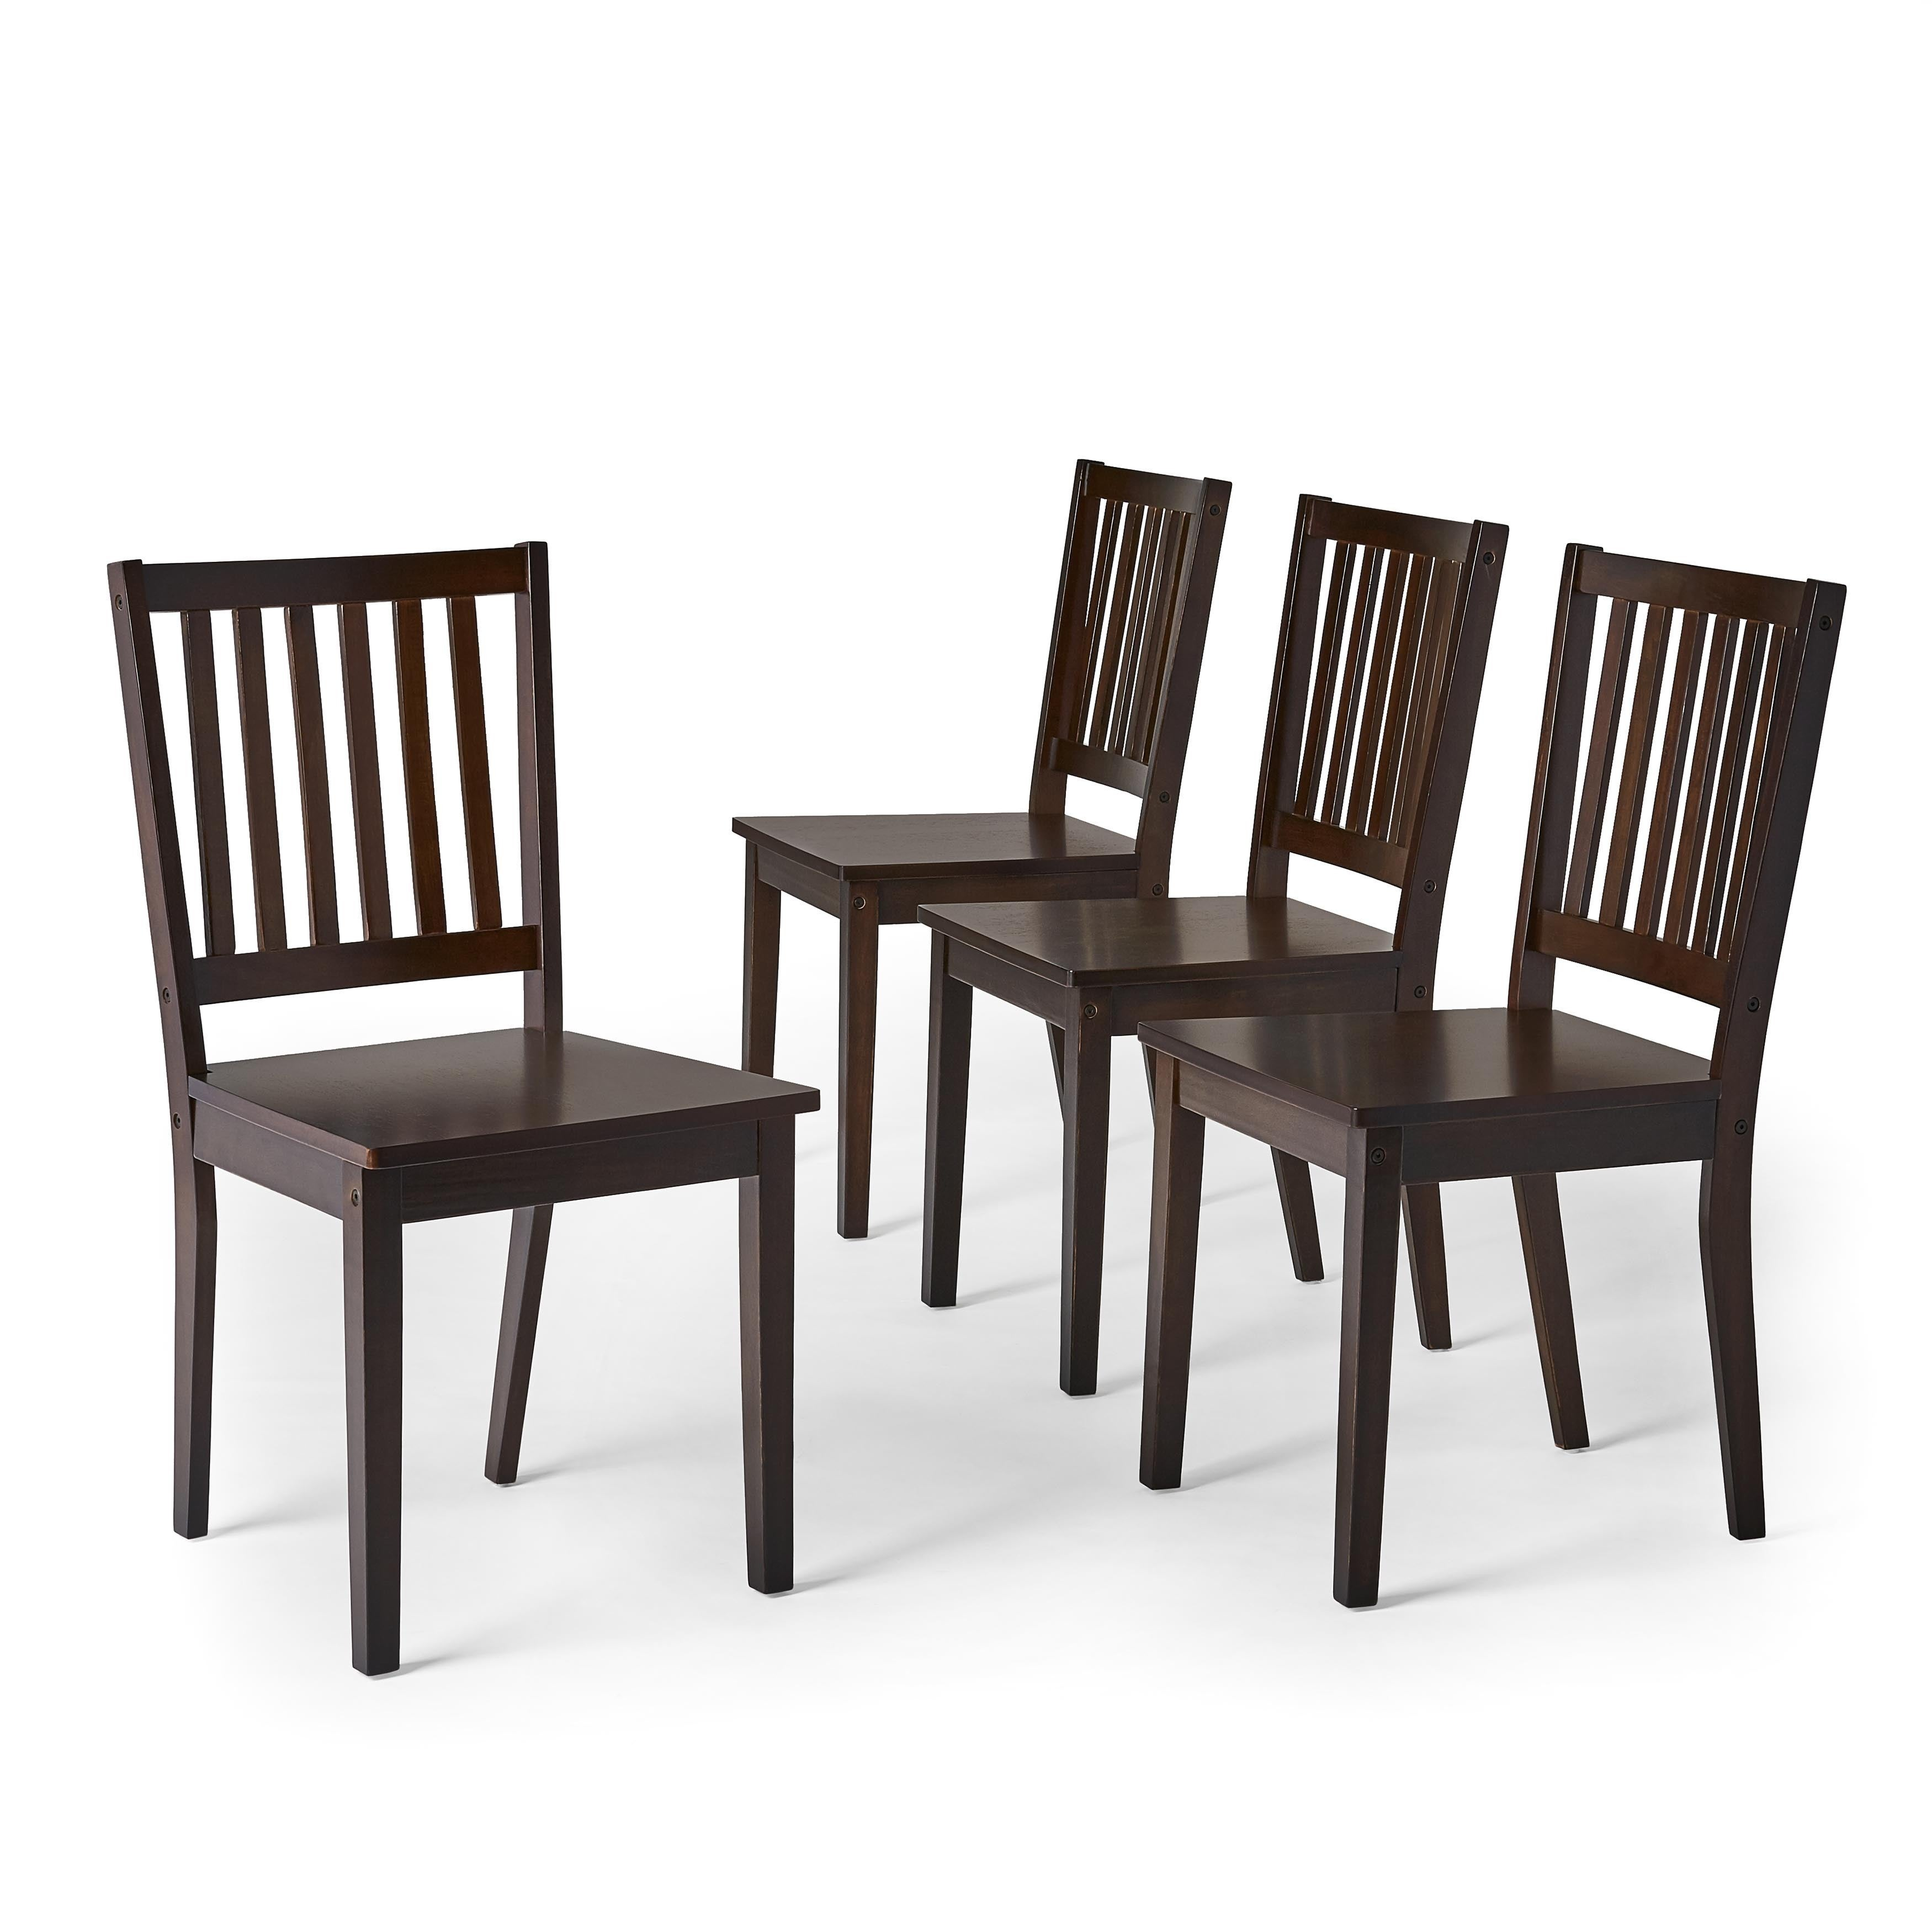 Beautiful Simple Living Slat Espresso Rubberwood Dining Chairs (Set Of 4)   Free  Shipping Today   Overstock   13036454